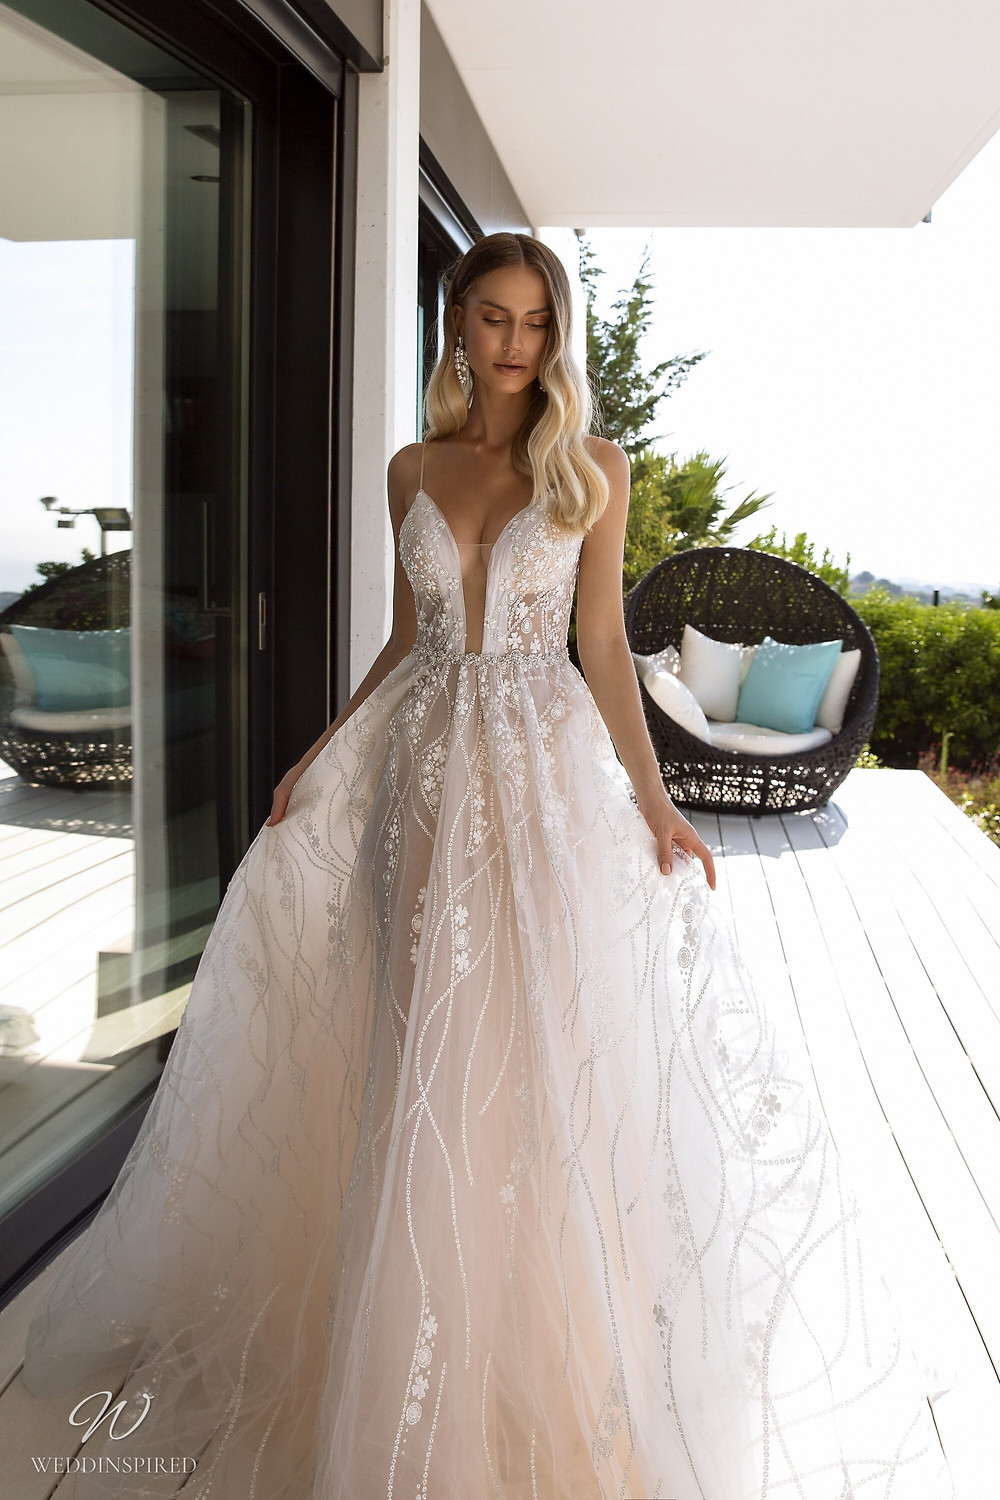 A Tina Valerdi blush tulle A-line wedding dress with a low neckline and thin straps